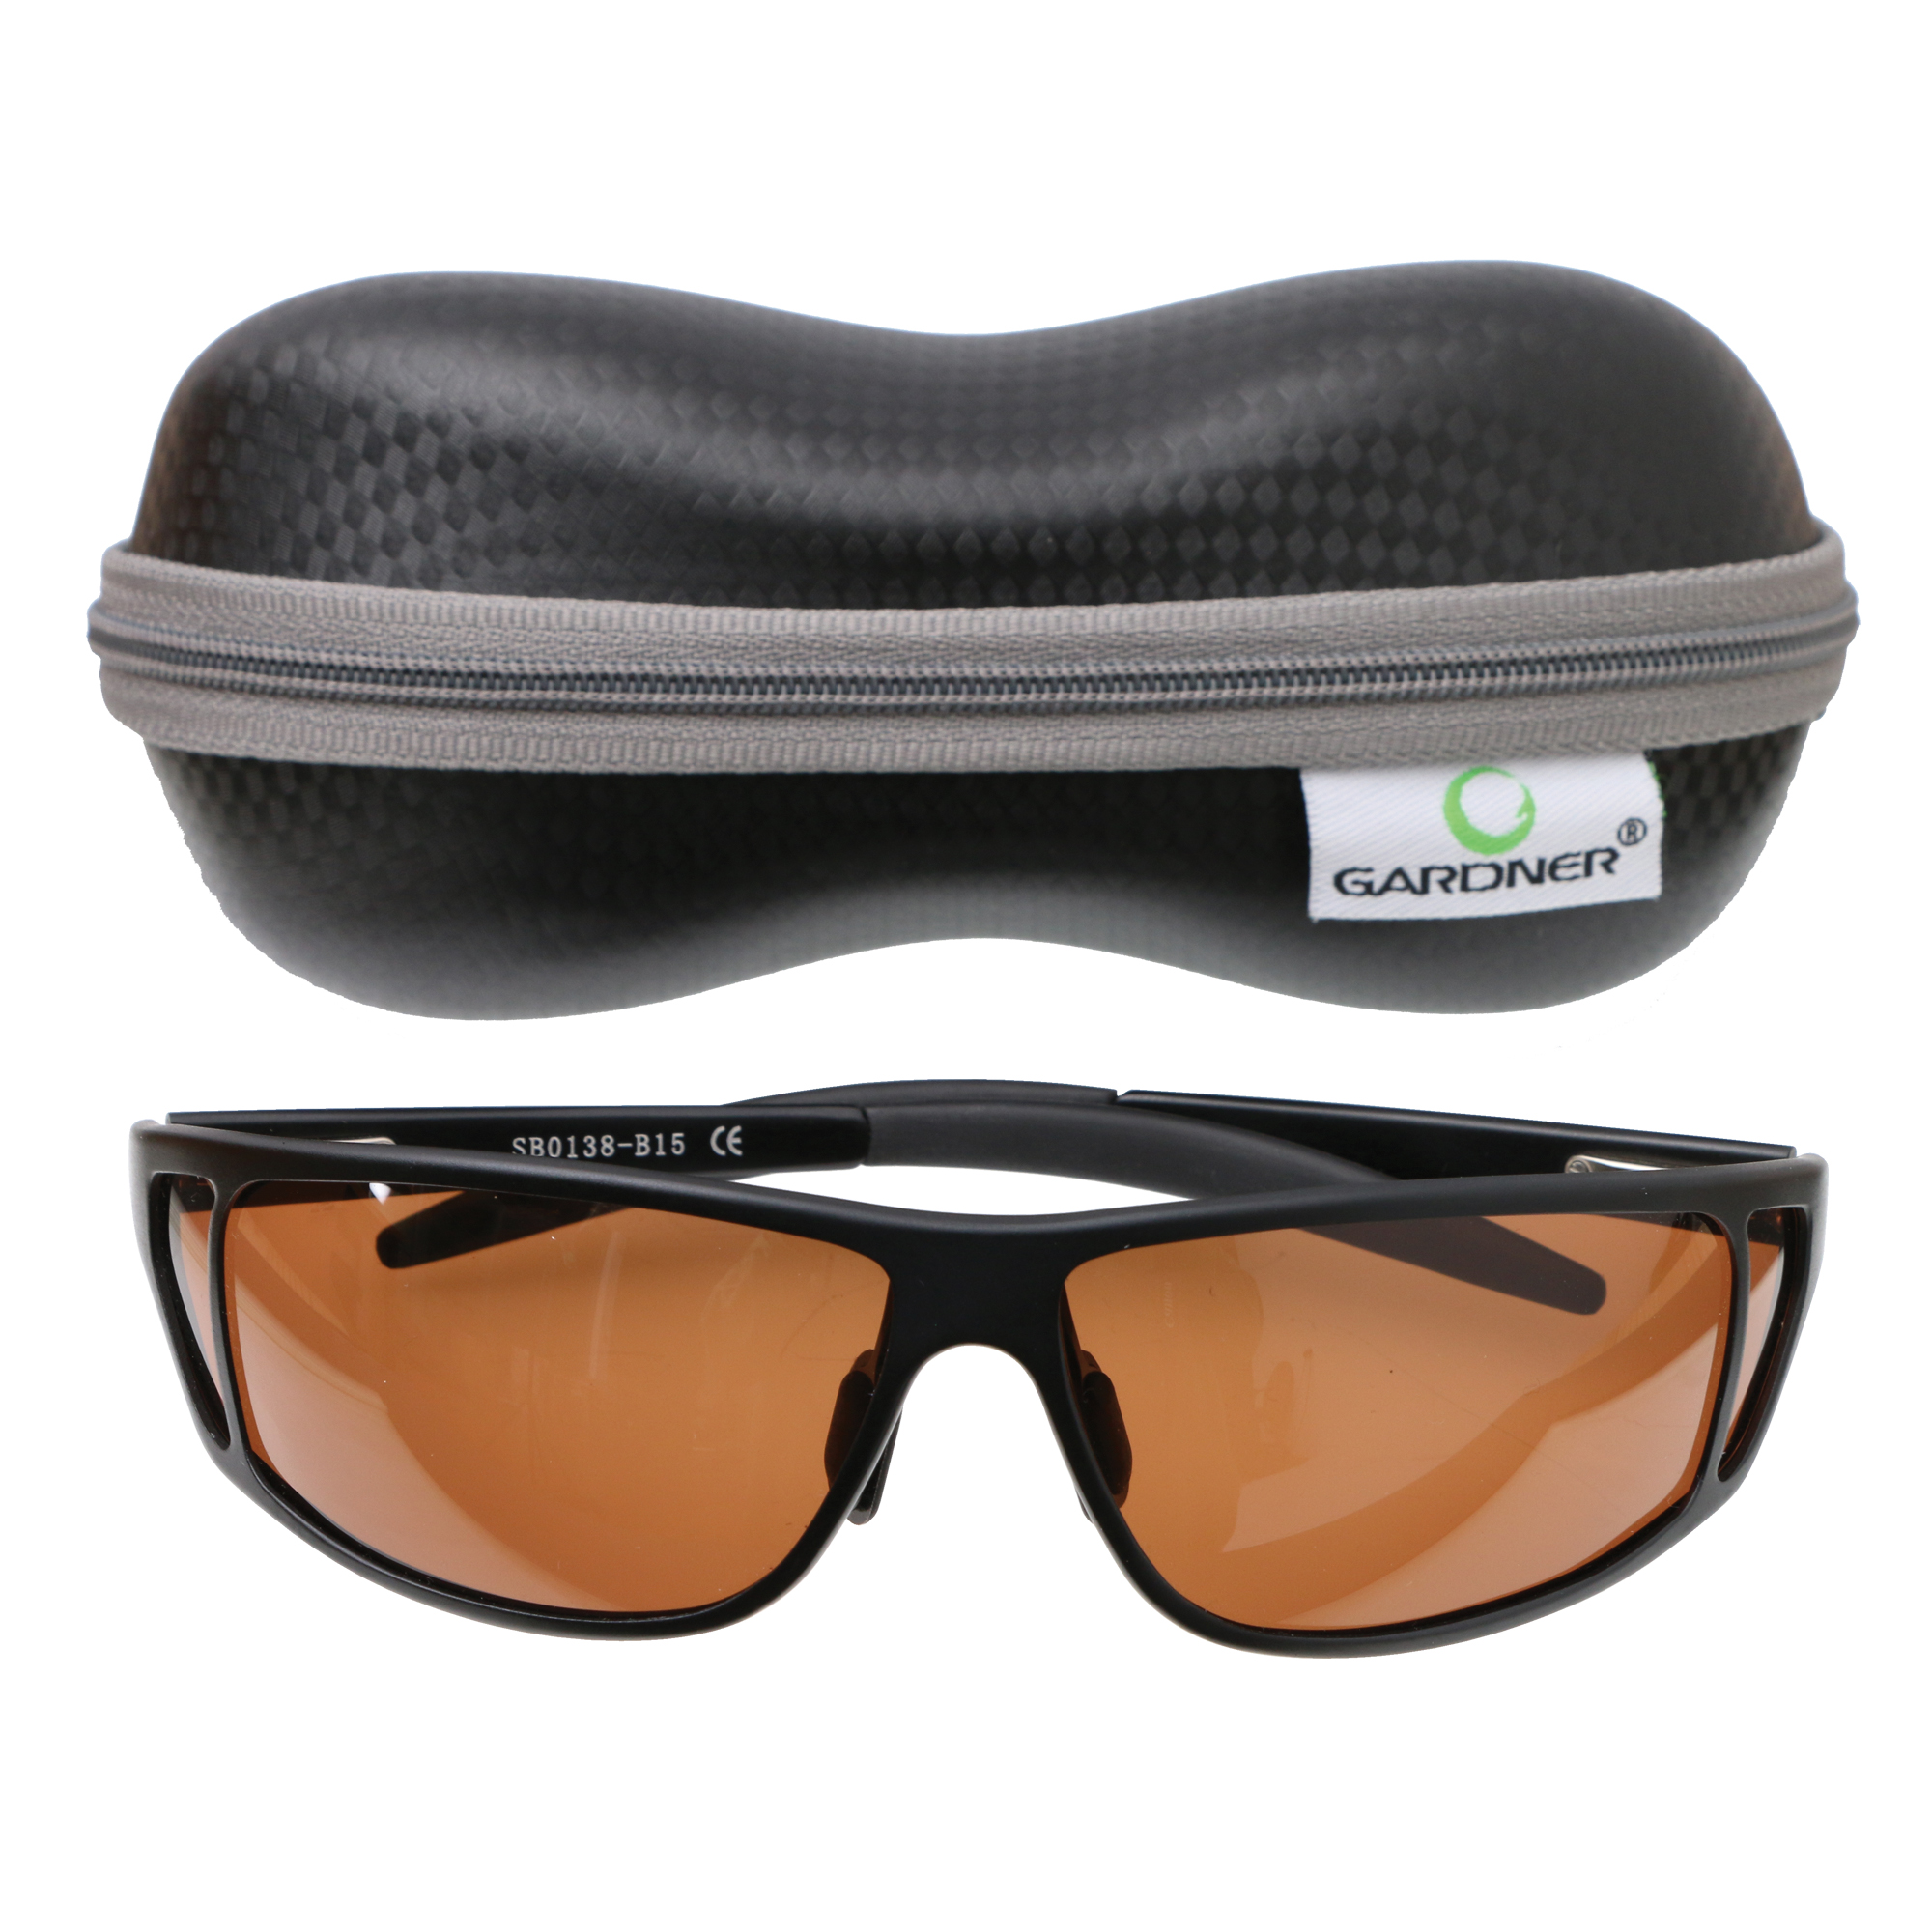 Okuliare Gardner Deluxe  Polarised Sunglasses (UV400)